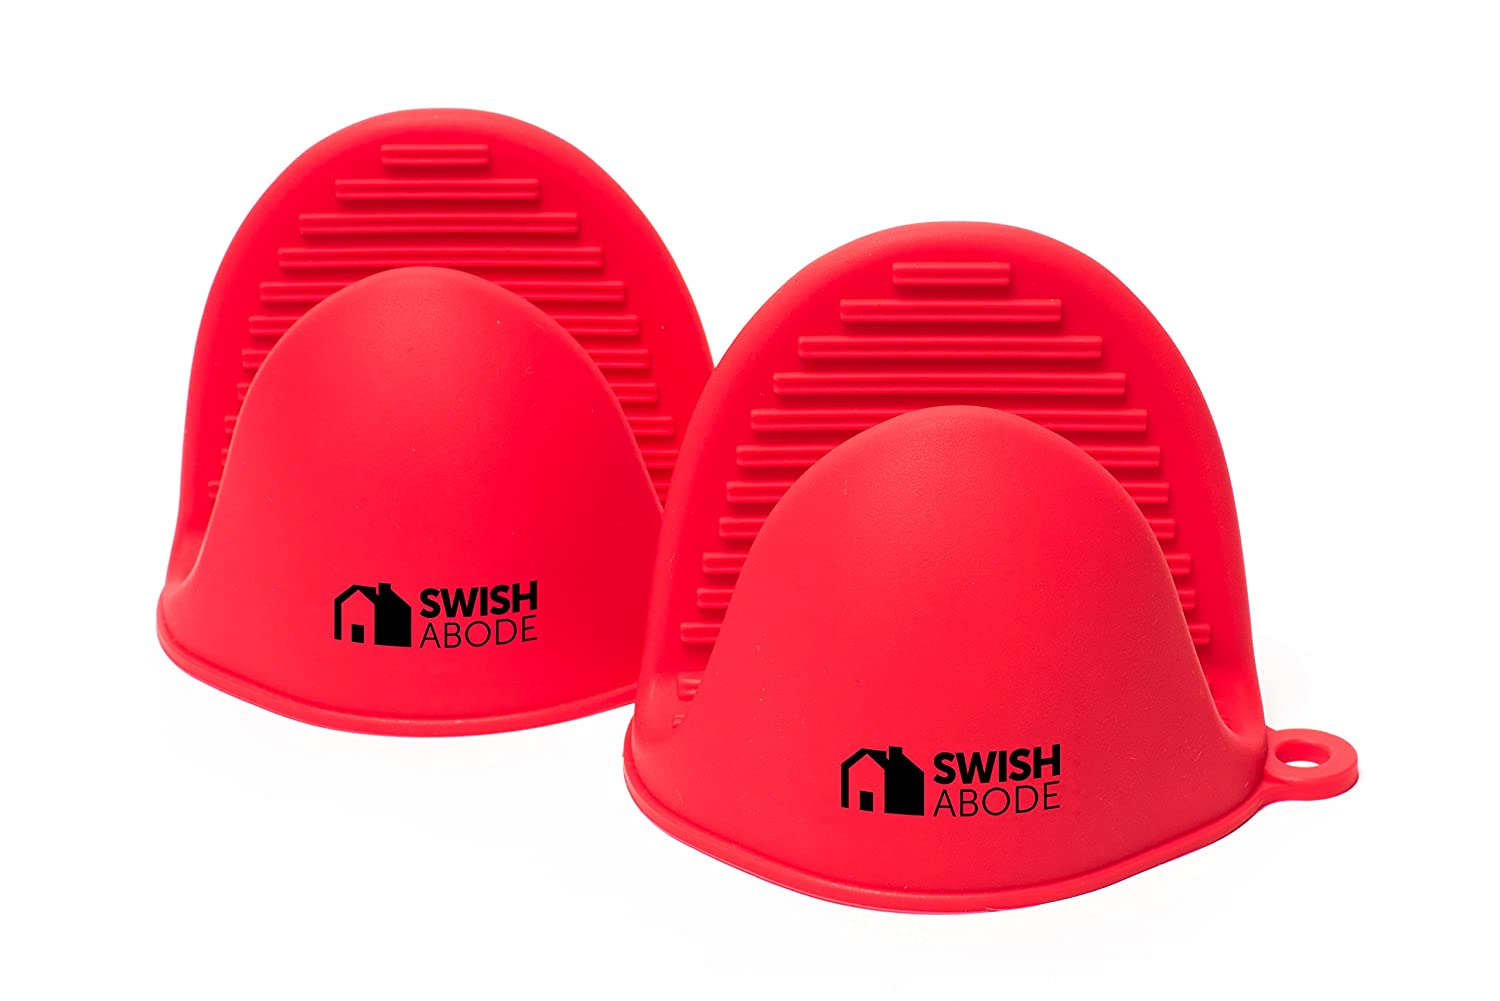 Swish Abode Red Silicone Oven Mitts Set (2) for Instant Pot or Kitchen use as Potholder or Baking Holder. Mini pinch mitt is sold in a pair and mitten holders can be used when cooking on a grill or BBQ